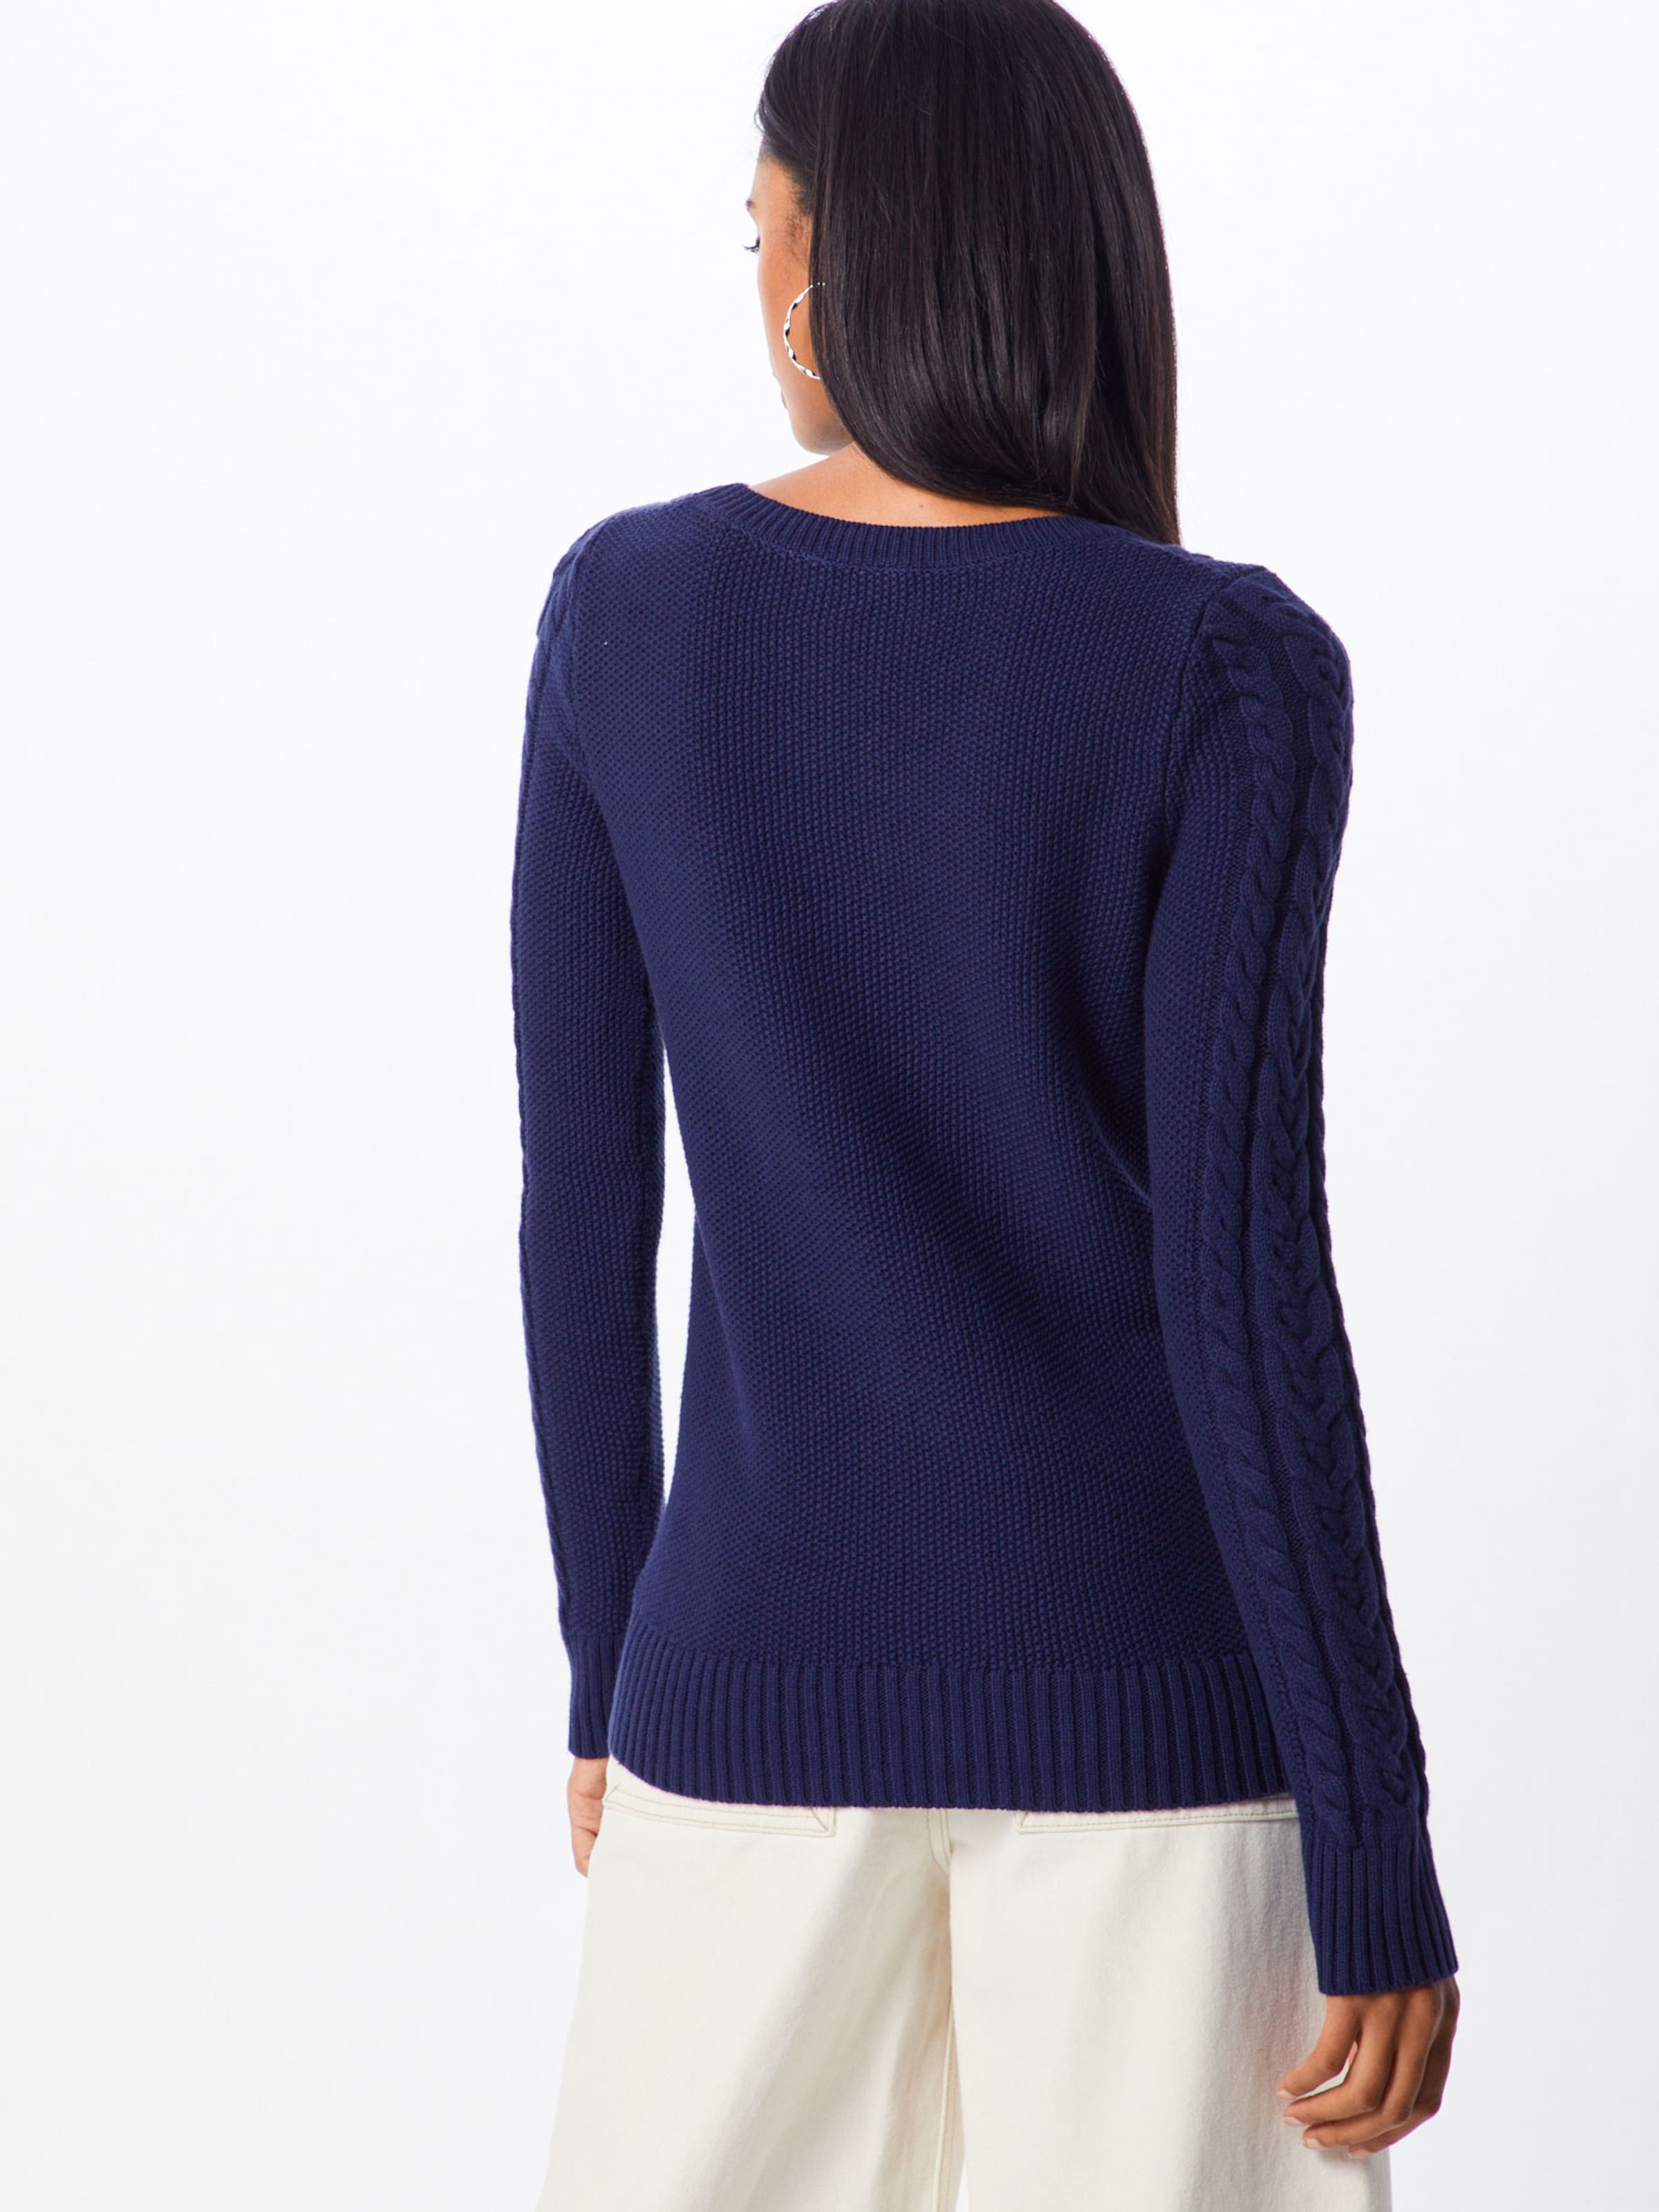 Bleu Gap Pull over Oc En Crew' Marine Cable 'tb xBeCord